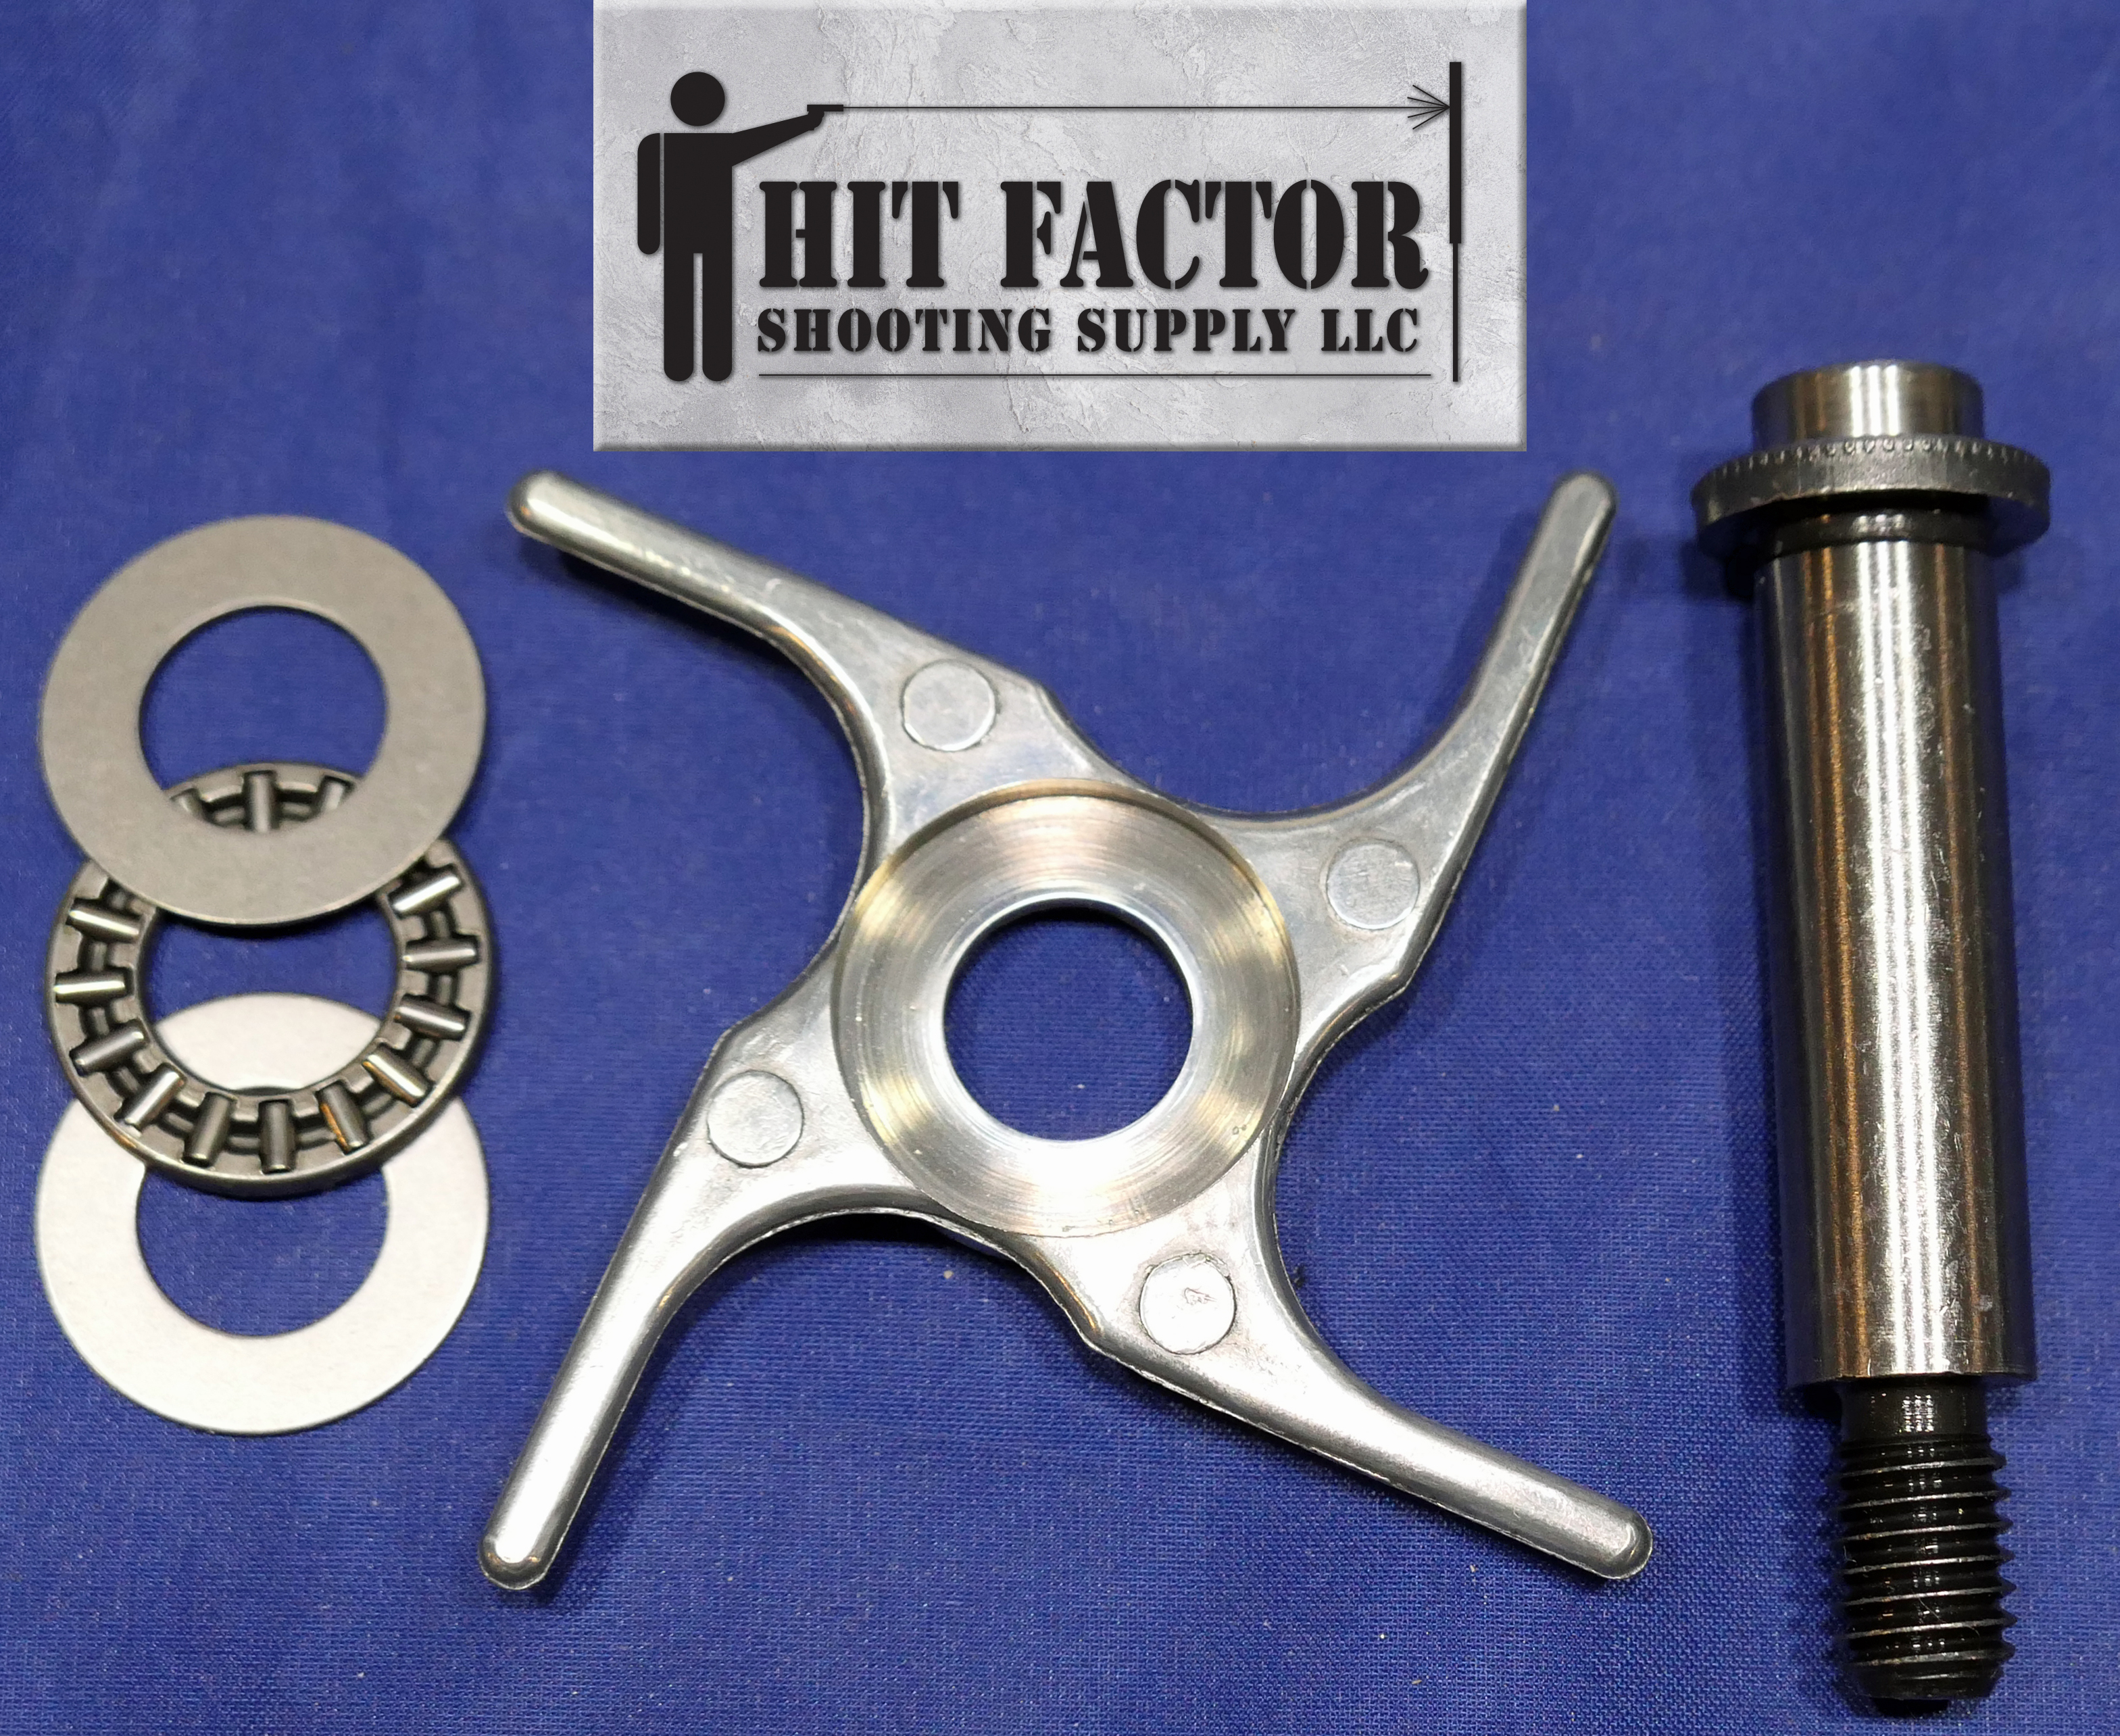 Hit Factor Shooting Supply, LLC Home Page